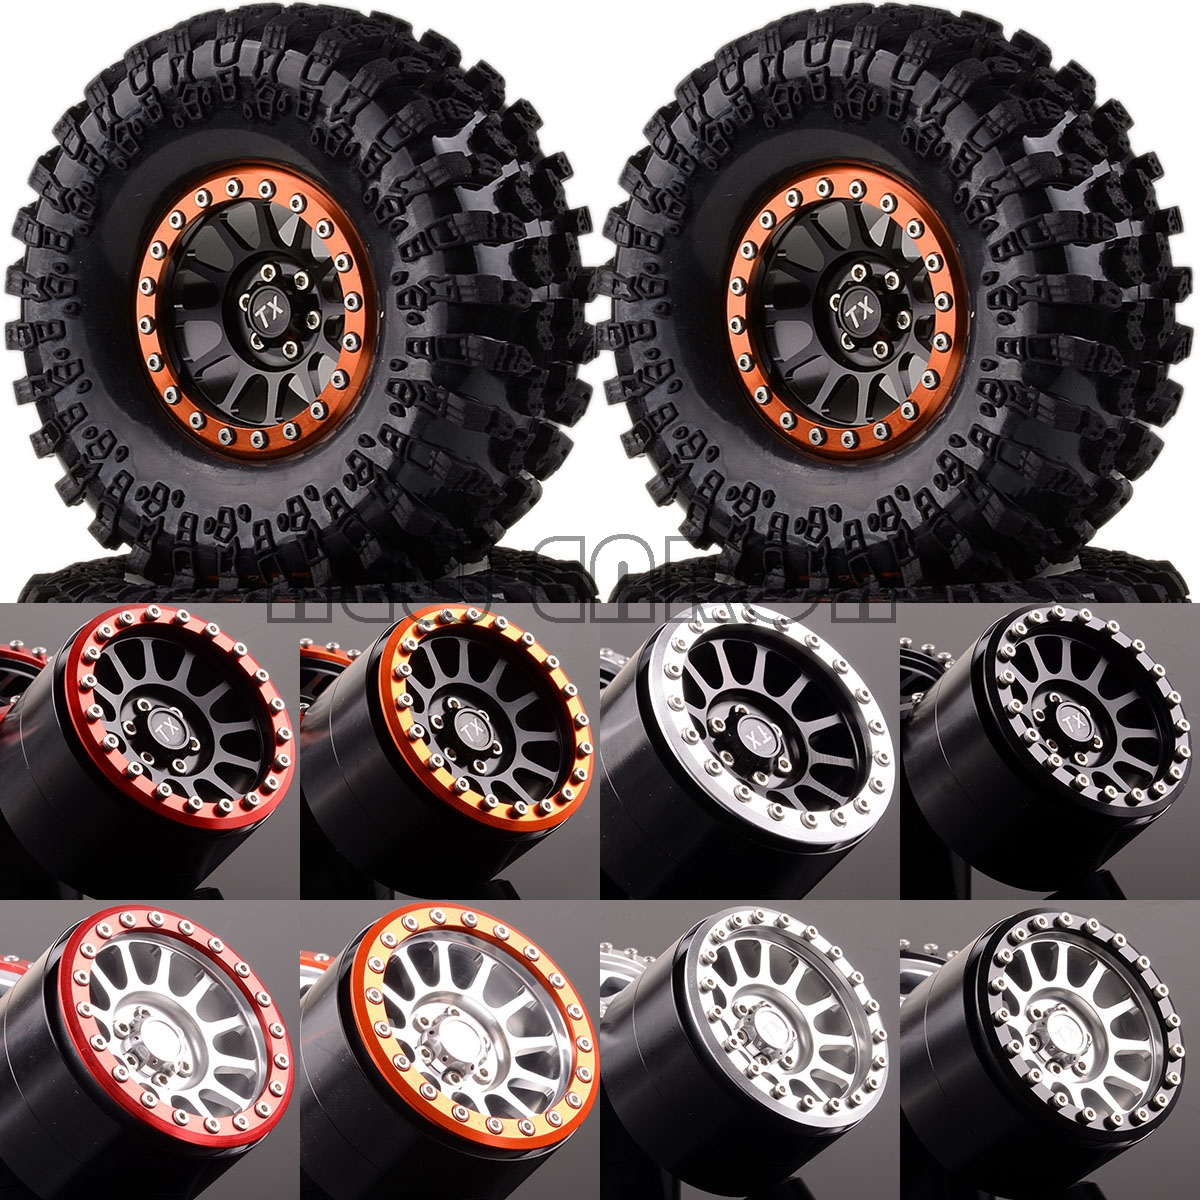 NEW ENRON 1:10 SET Aluminum 2.2 Beadlock Wheels & Tires 2022-3021 FOR RC 1/10 Rock Crawler 1 10 inflatable tires 4p set air pneumatictires with alloy beadlock wheels set f rc crawler rock crawler tires toy cars parts